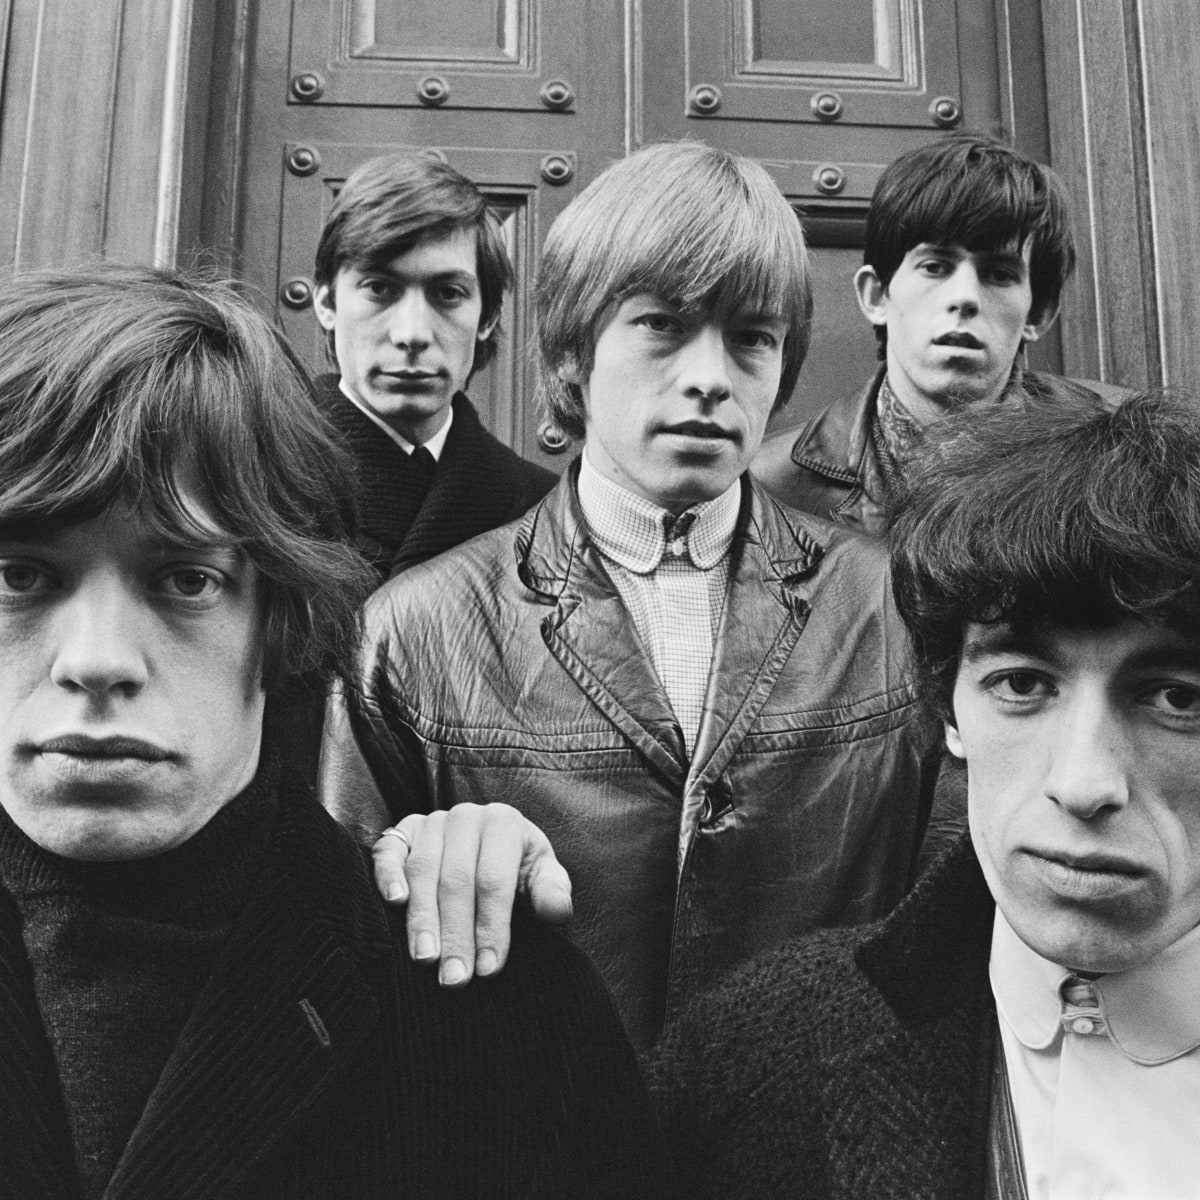 How Childhood Friends Mick Jagger And Keith Richards Formed The Rolling Stones Biography